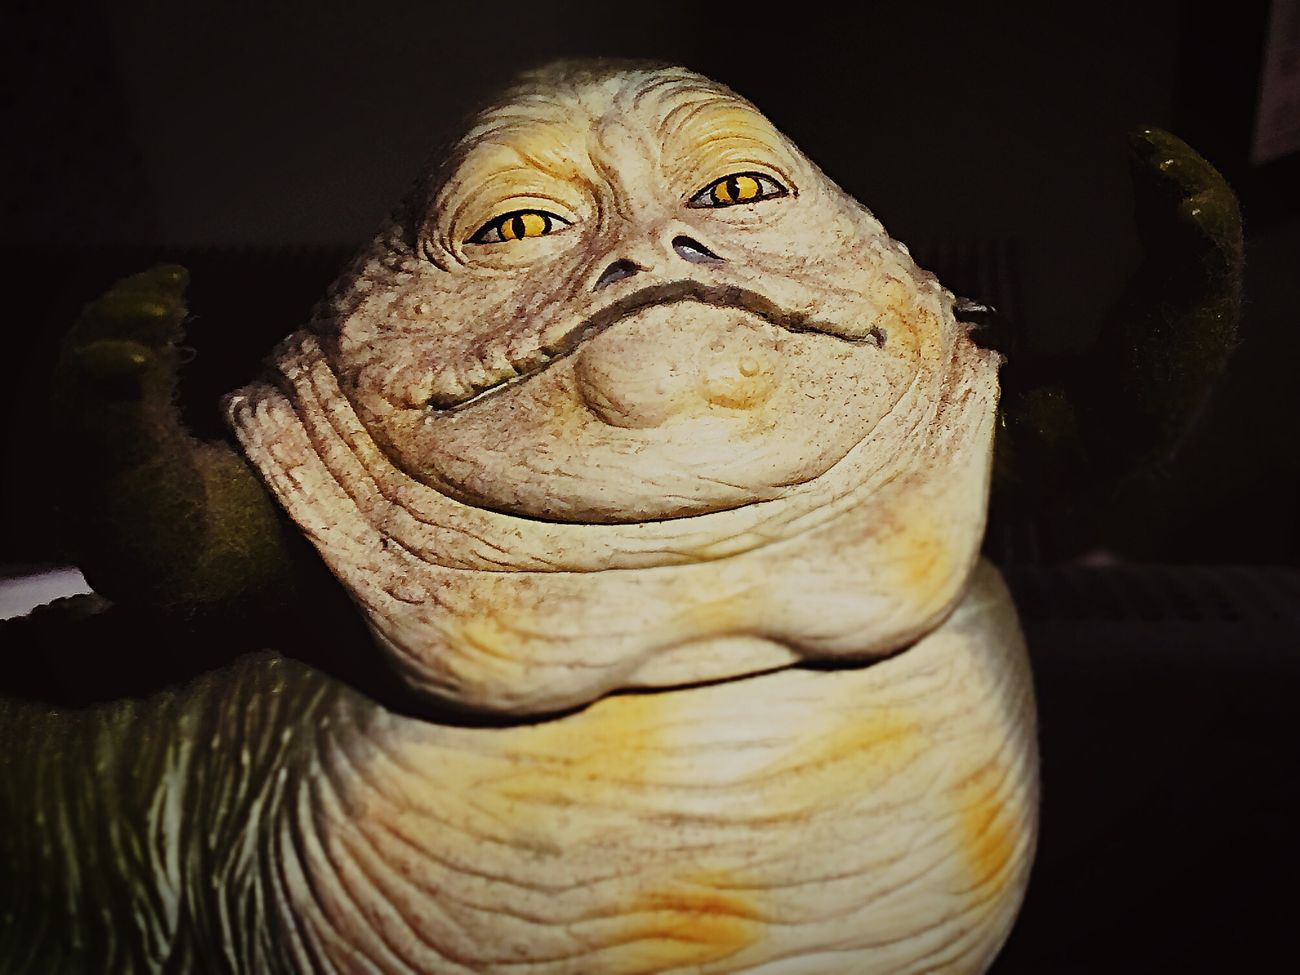 My co-worker today Jabbathehutt Starwars